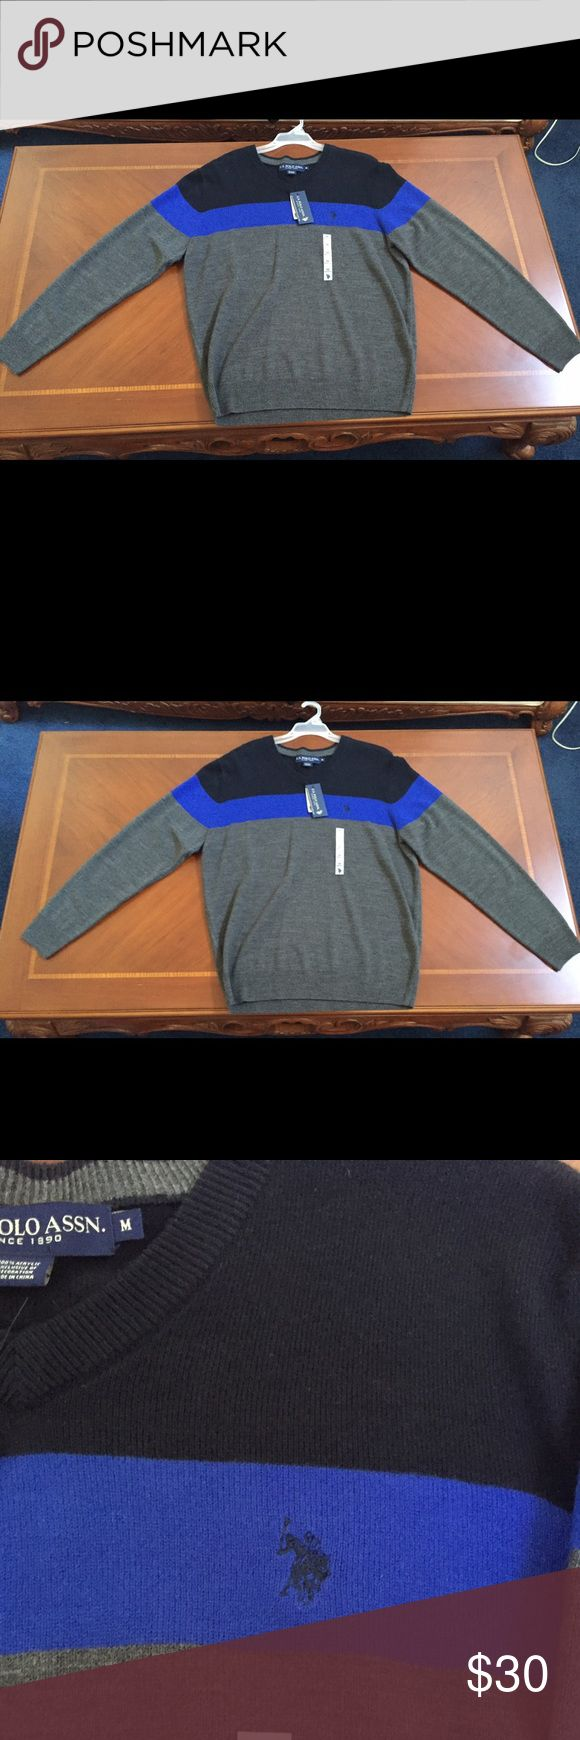 Men's U.S. Polo Association cardigan Tri-color men's cardigan, black, blue, and grey. Polo logo on upper right. V-neck cut. Originally from Sears. Never worn, new with tags. U.S. Polo Assn. Sweaters V-Neck